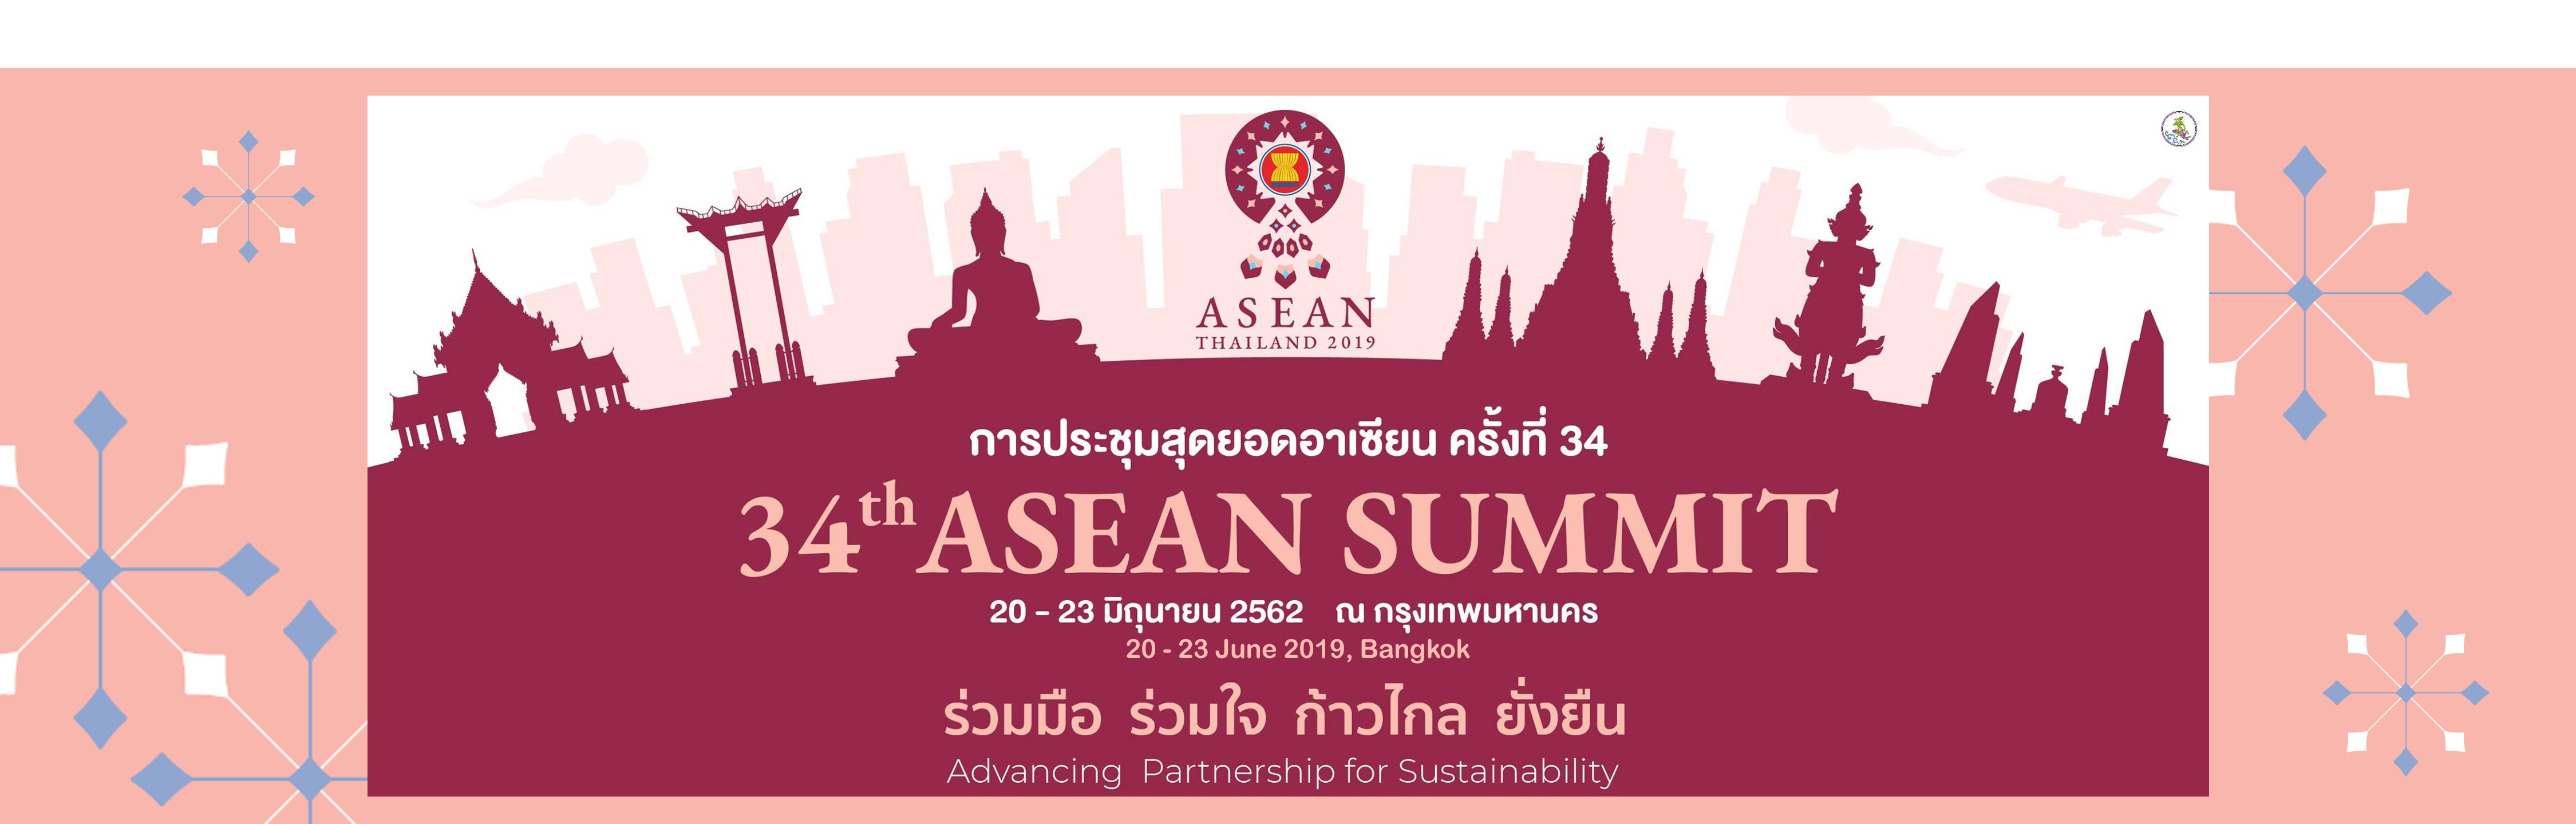 ASEAN Summit 2019